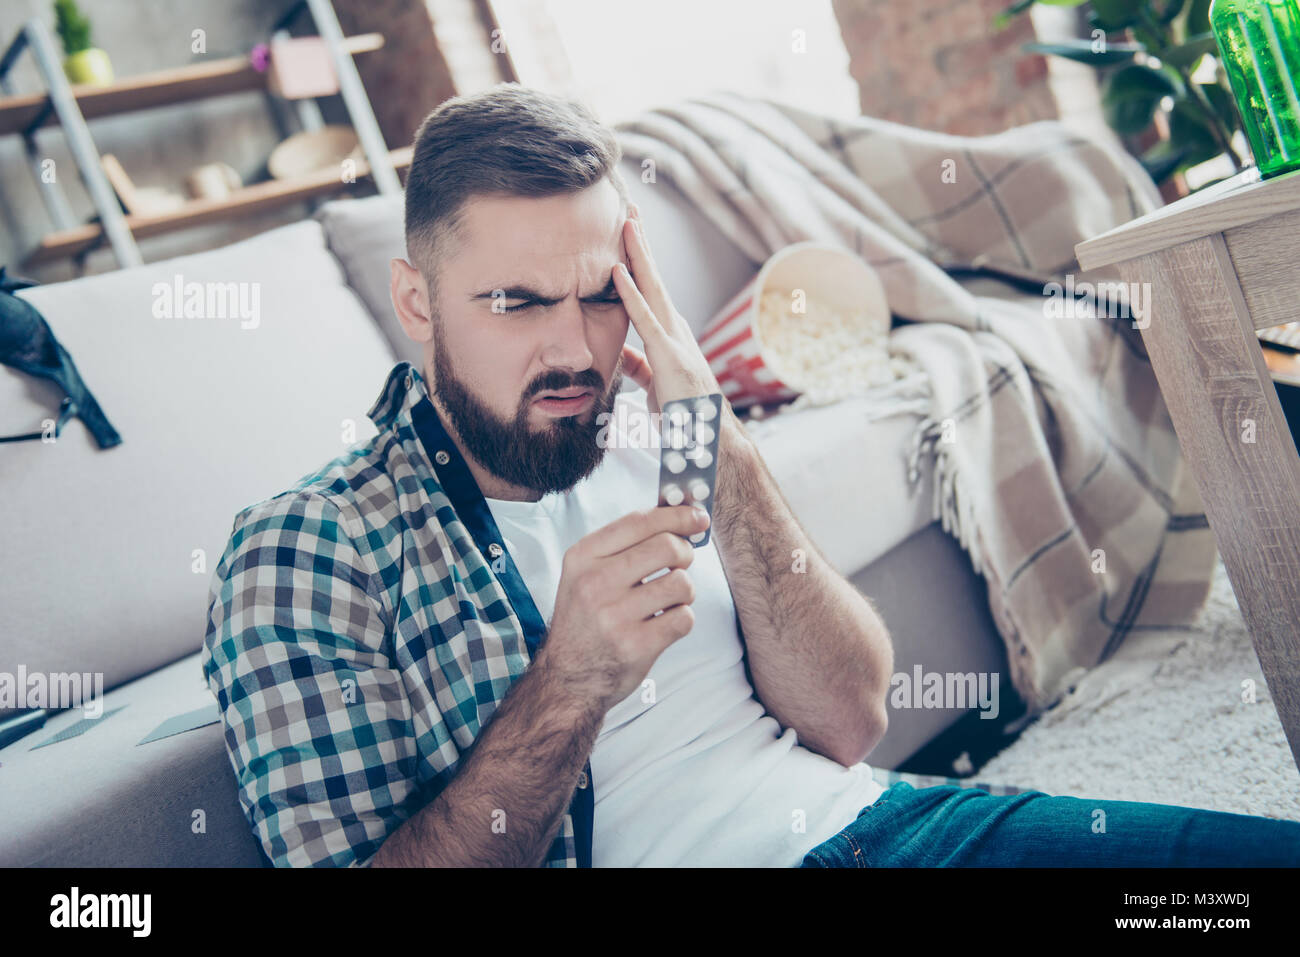 Close up portrait of sick ill feeling unwell sad troubled upset bearded guy touching his forehead and reading the - Stock Image